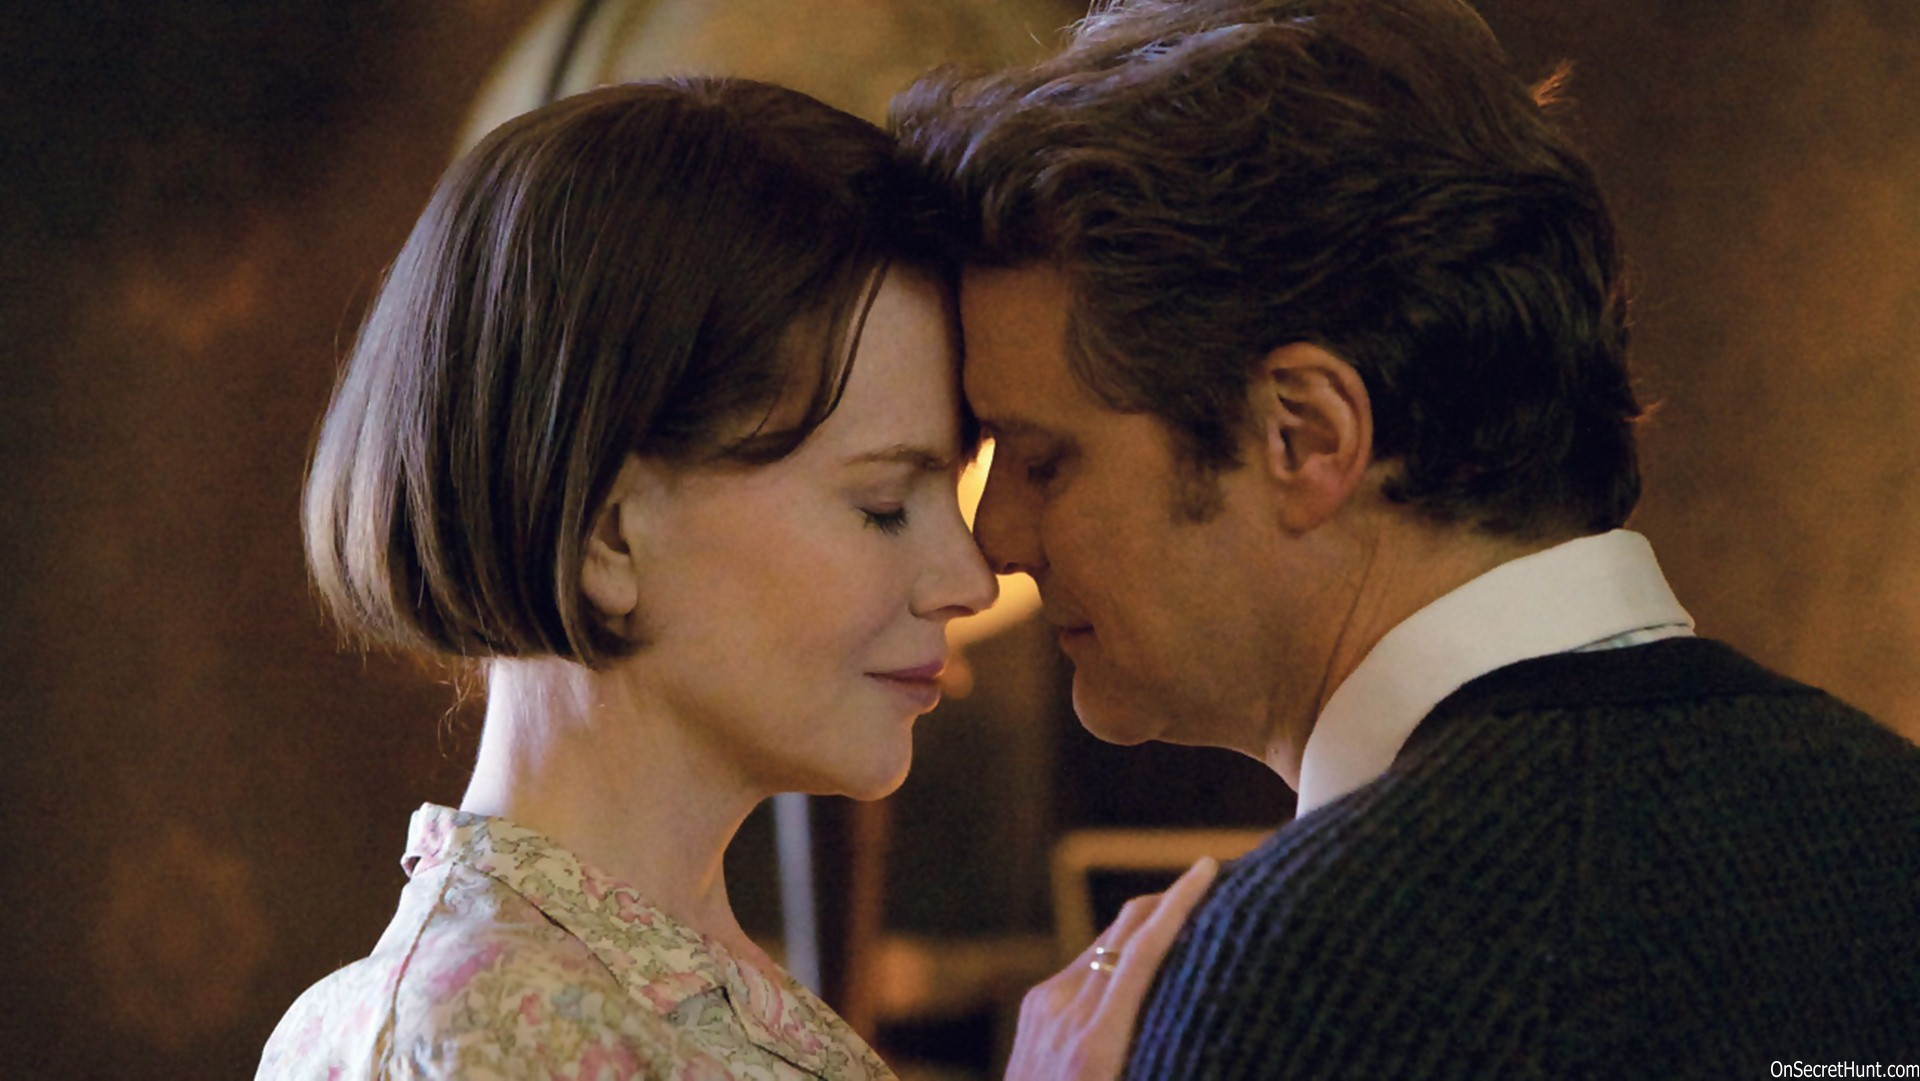 Nicole Kidman and Colin Firth in  The Railway Man